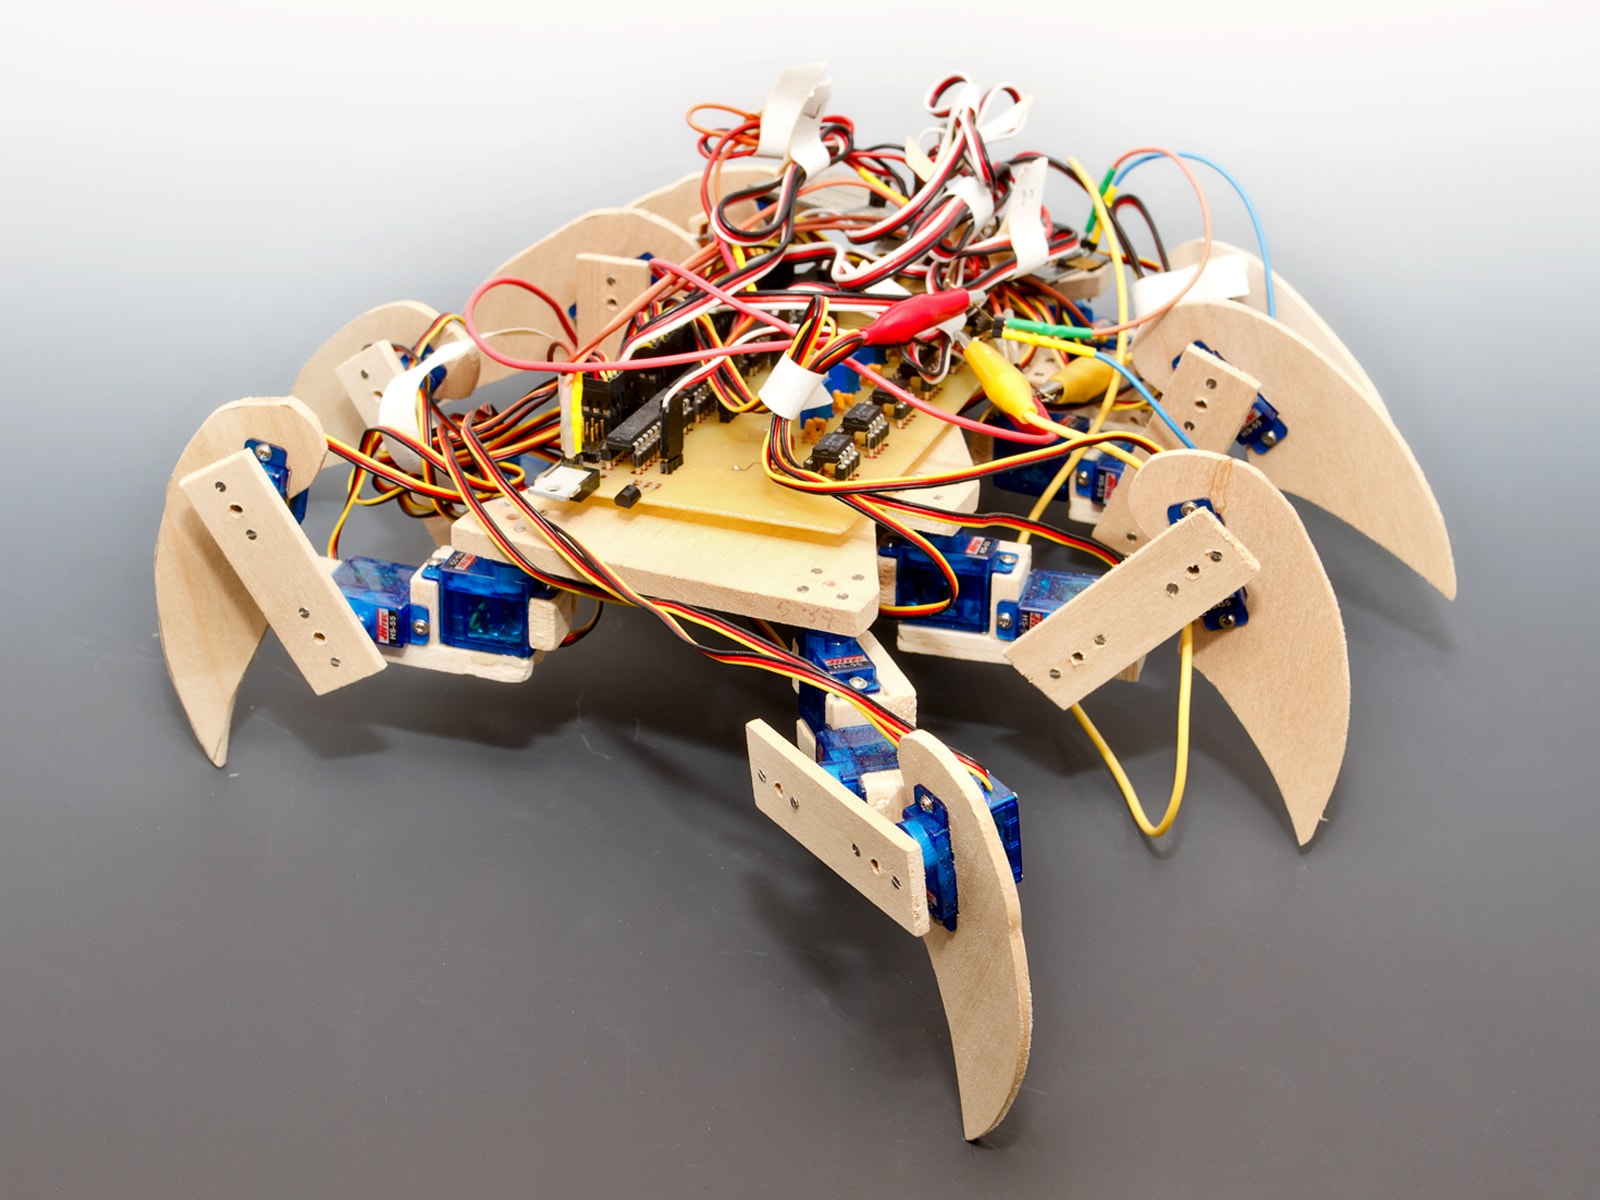 An eight-legged scorpion-like robot with exposed circuits.